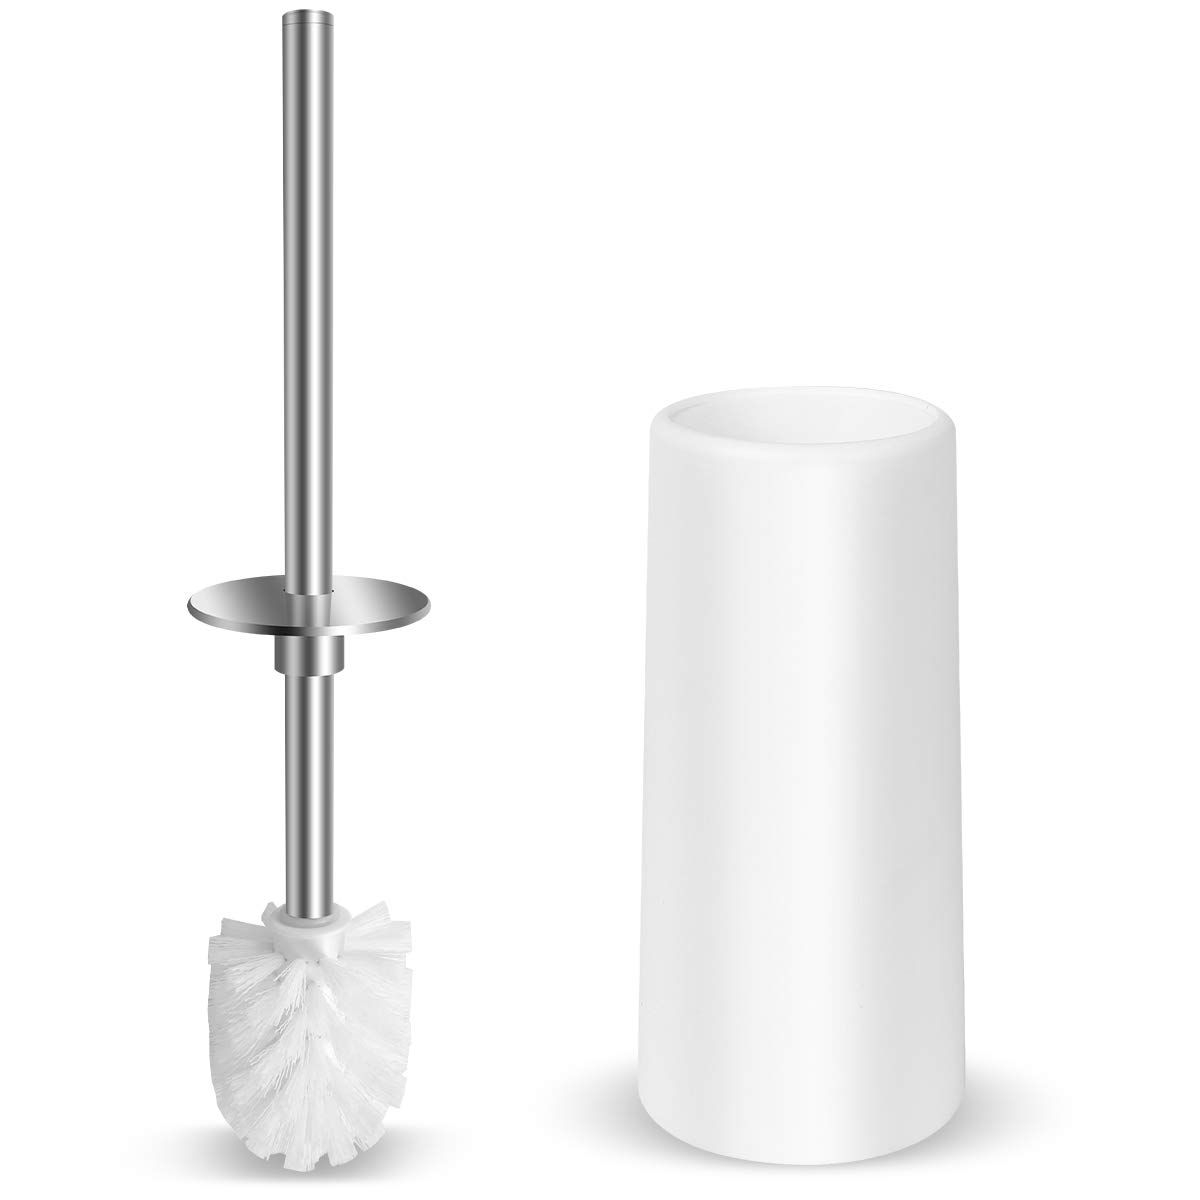 Vsadey Toilet Brush and Holder, Stainless Steel Long Handle Toilet Bowl Cleaner Brush with Durable Bristles and Enlarged Bottom Bathroom Accessories for Bathroom Toilet